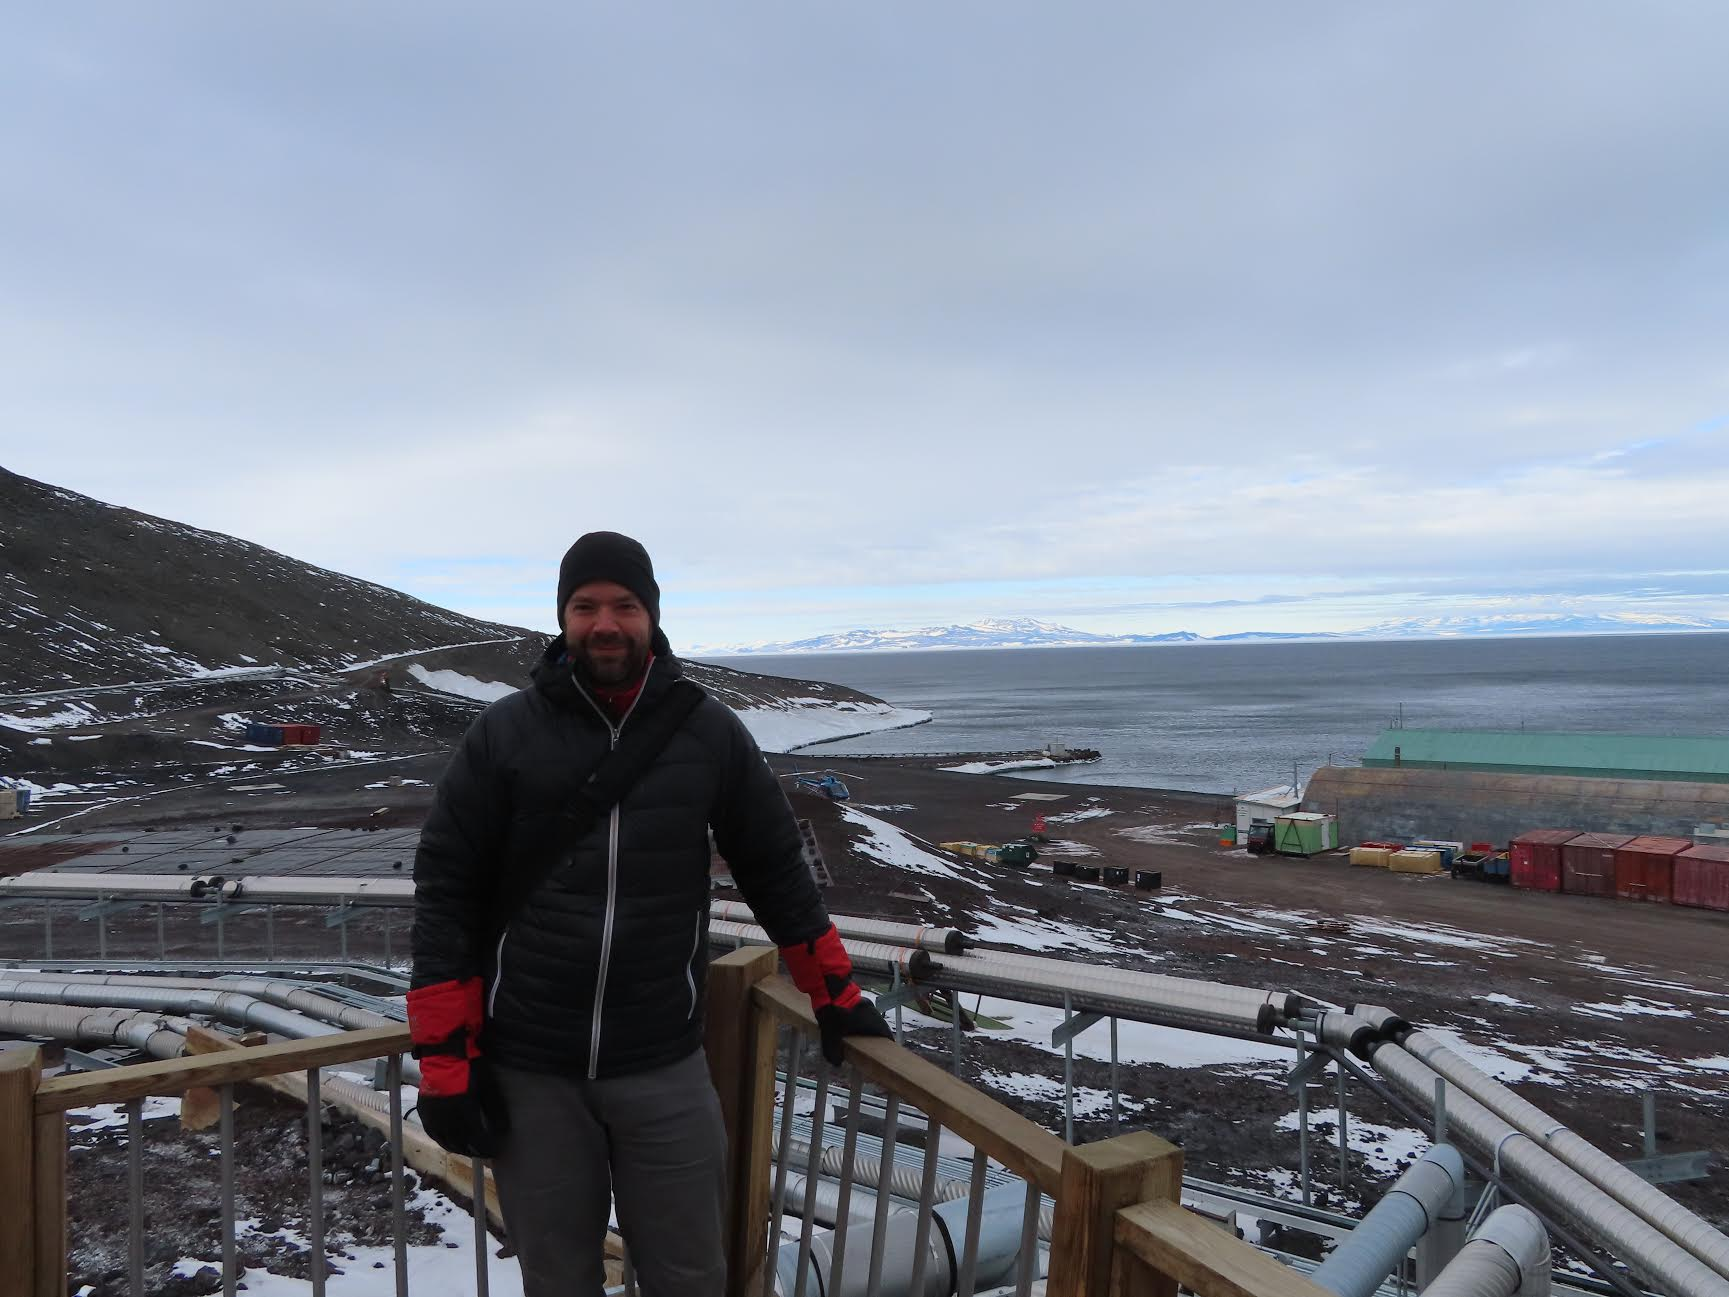 Pedro Salom at McMurdo Station